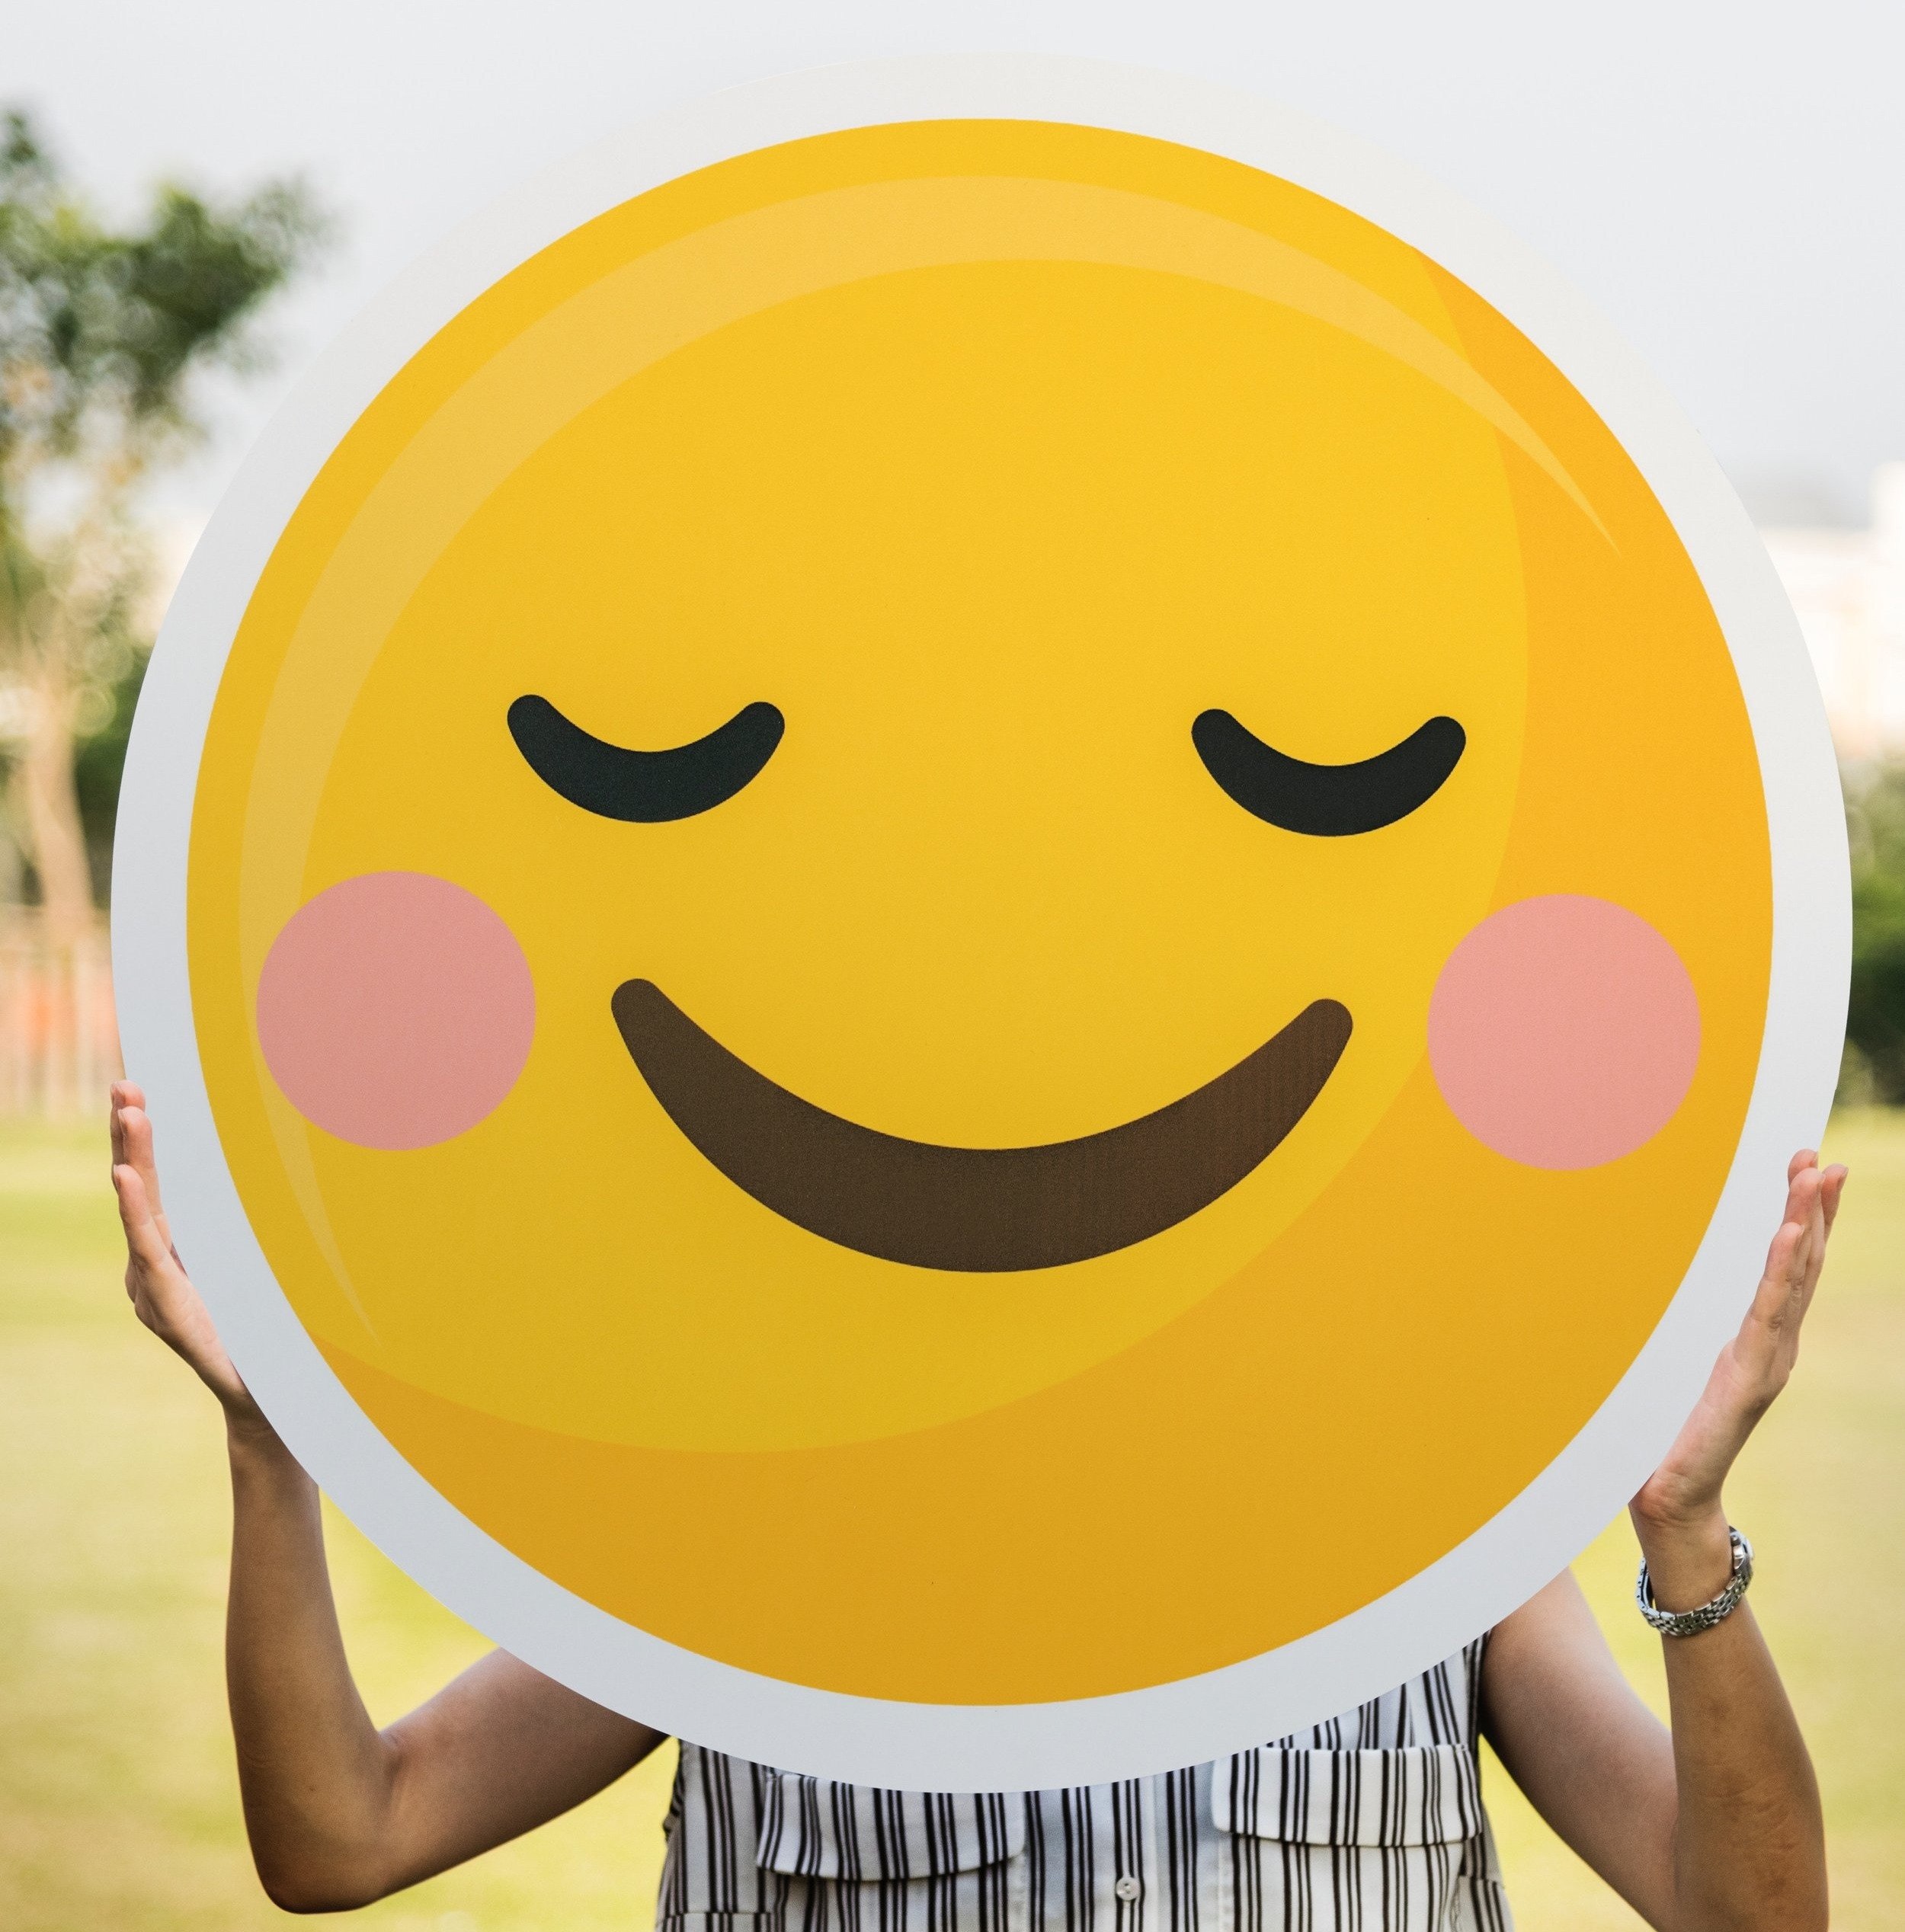 woman-holding-smiley-face.jpg